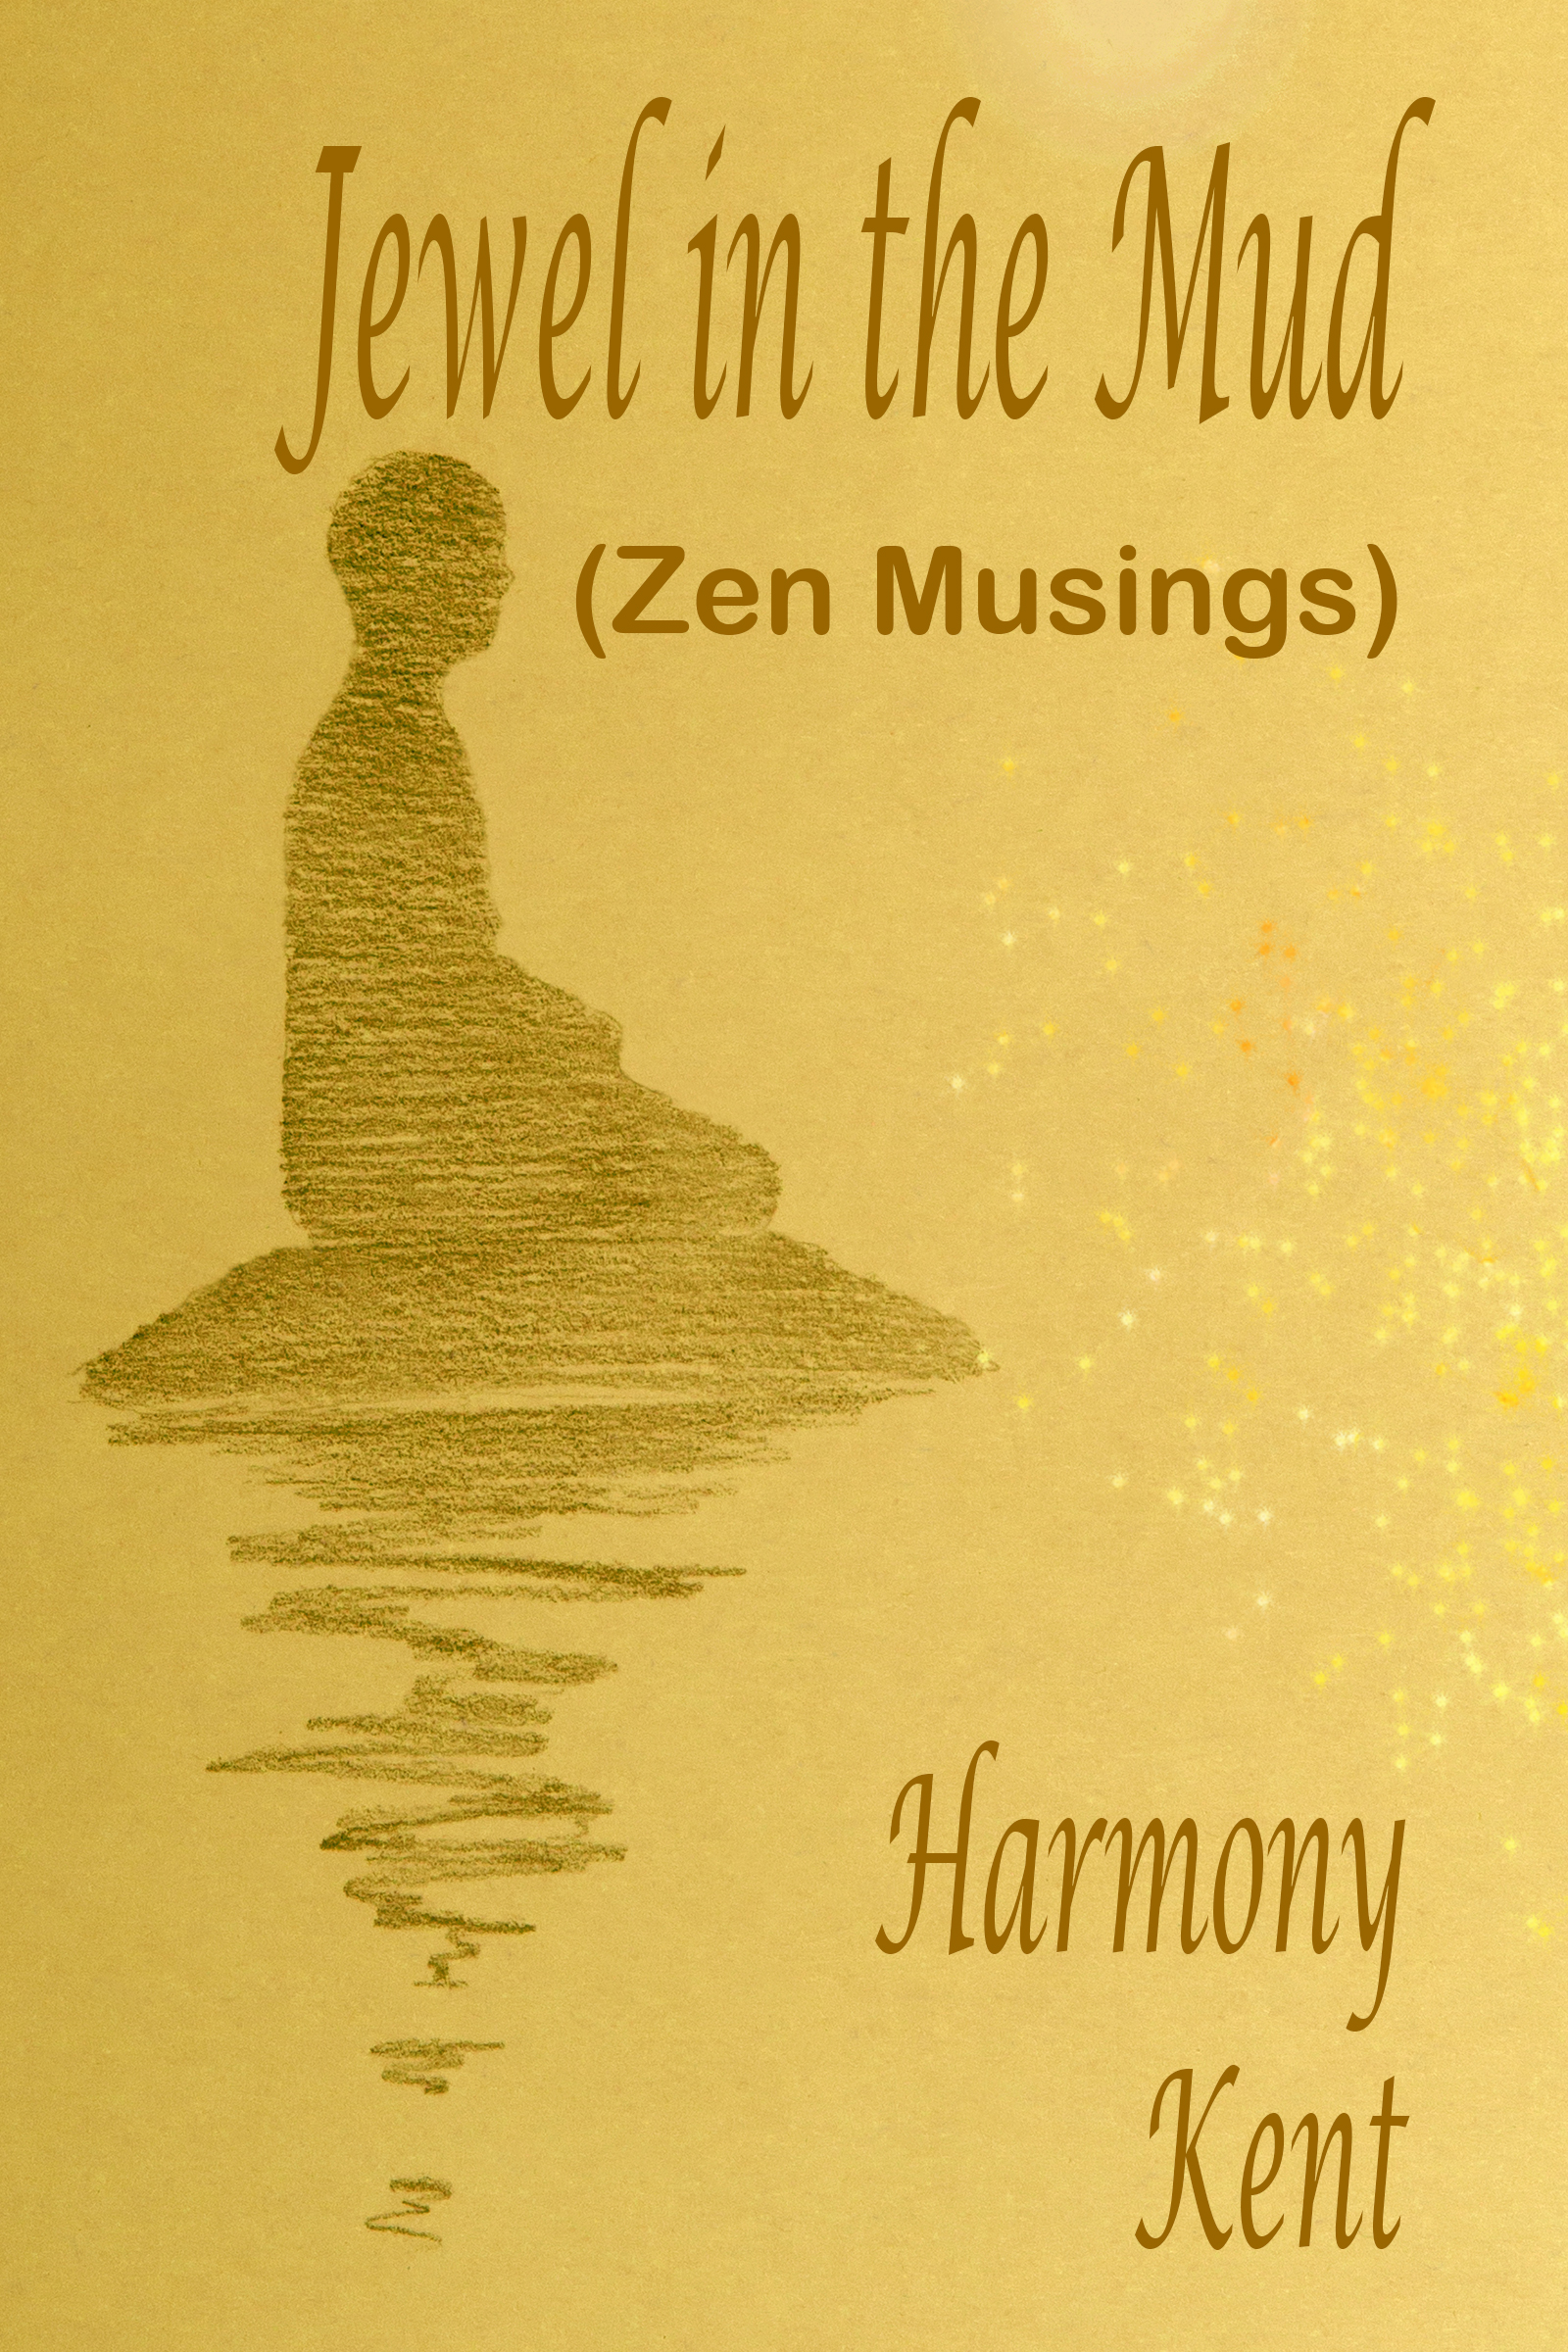 Jewel in the Mud (Zen Musings)